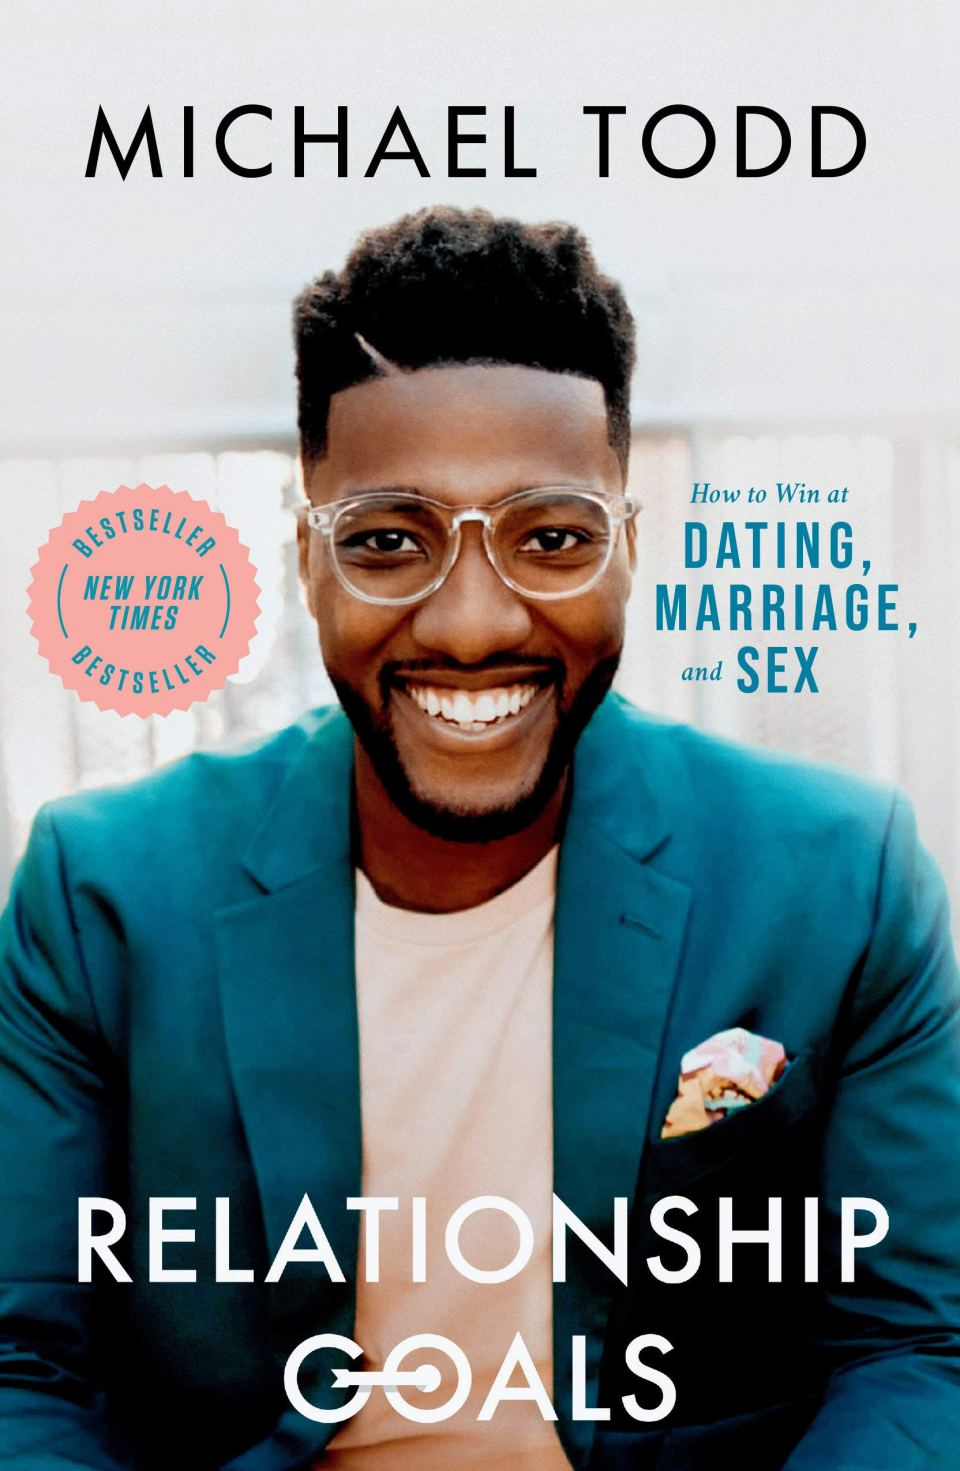 Relationship Goals: How to win at Dating and Marriage by Michael Todd